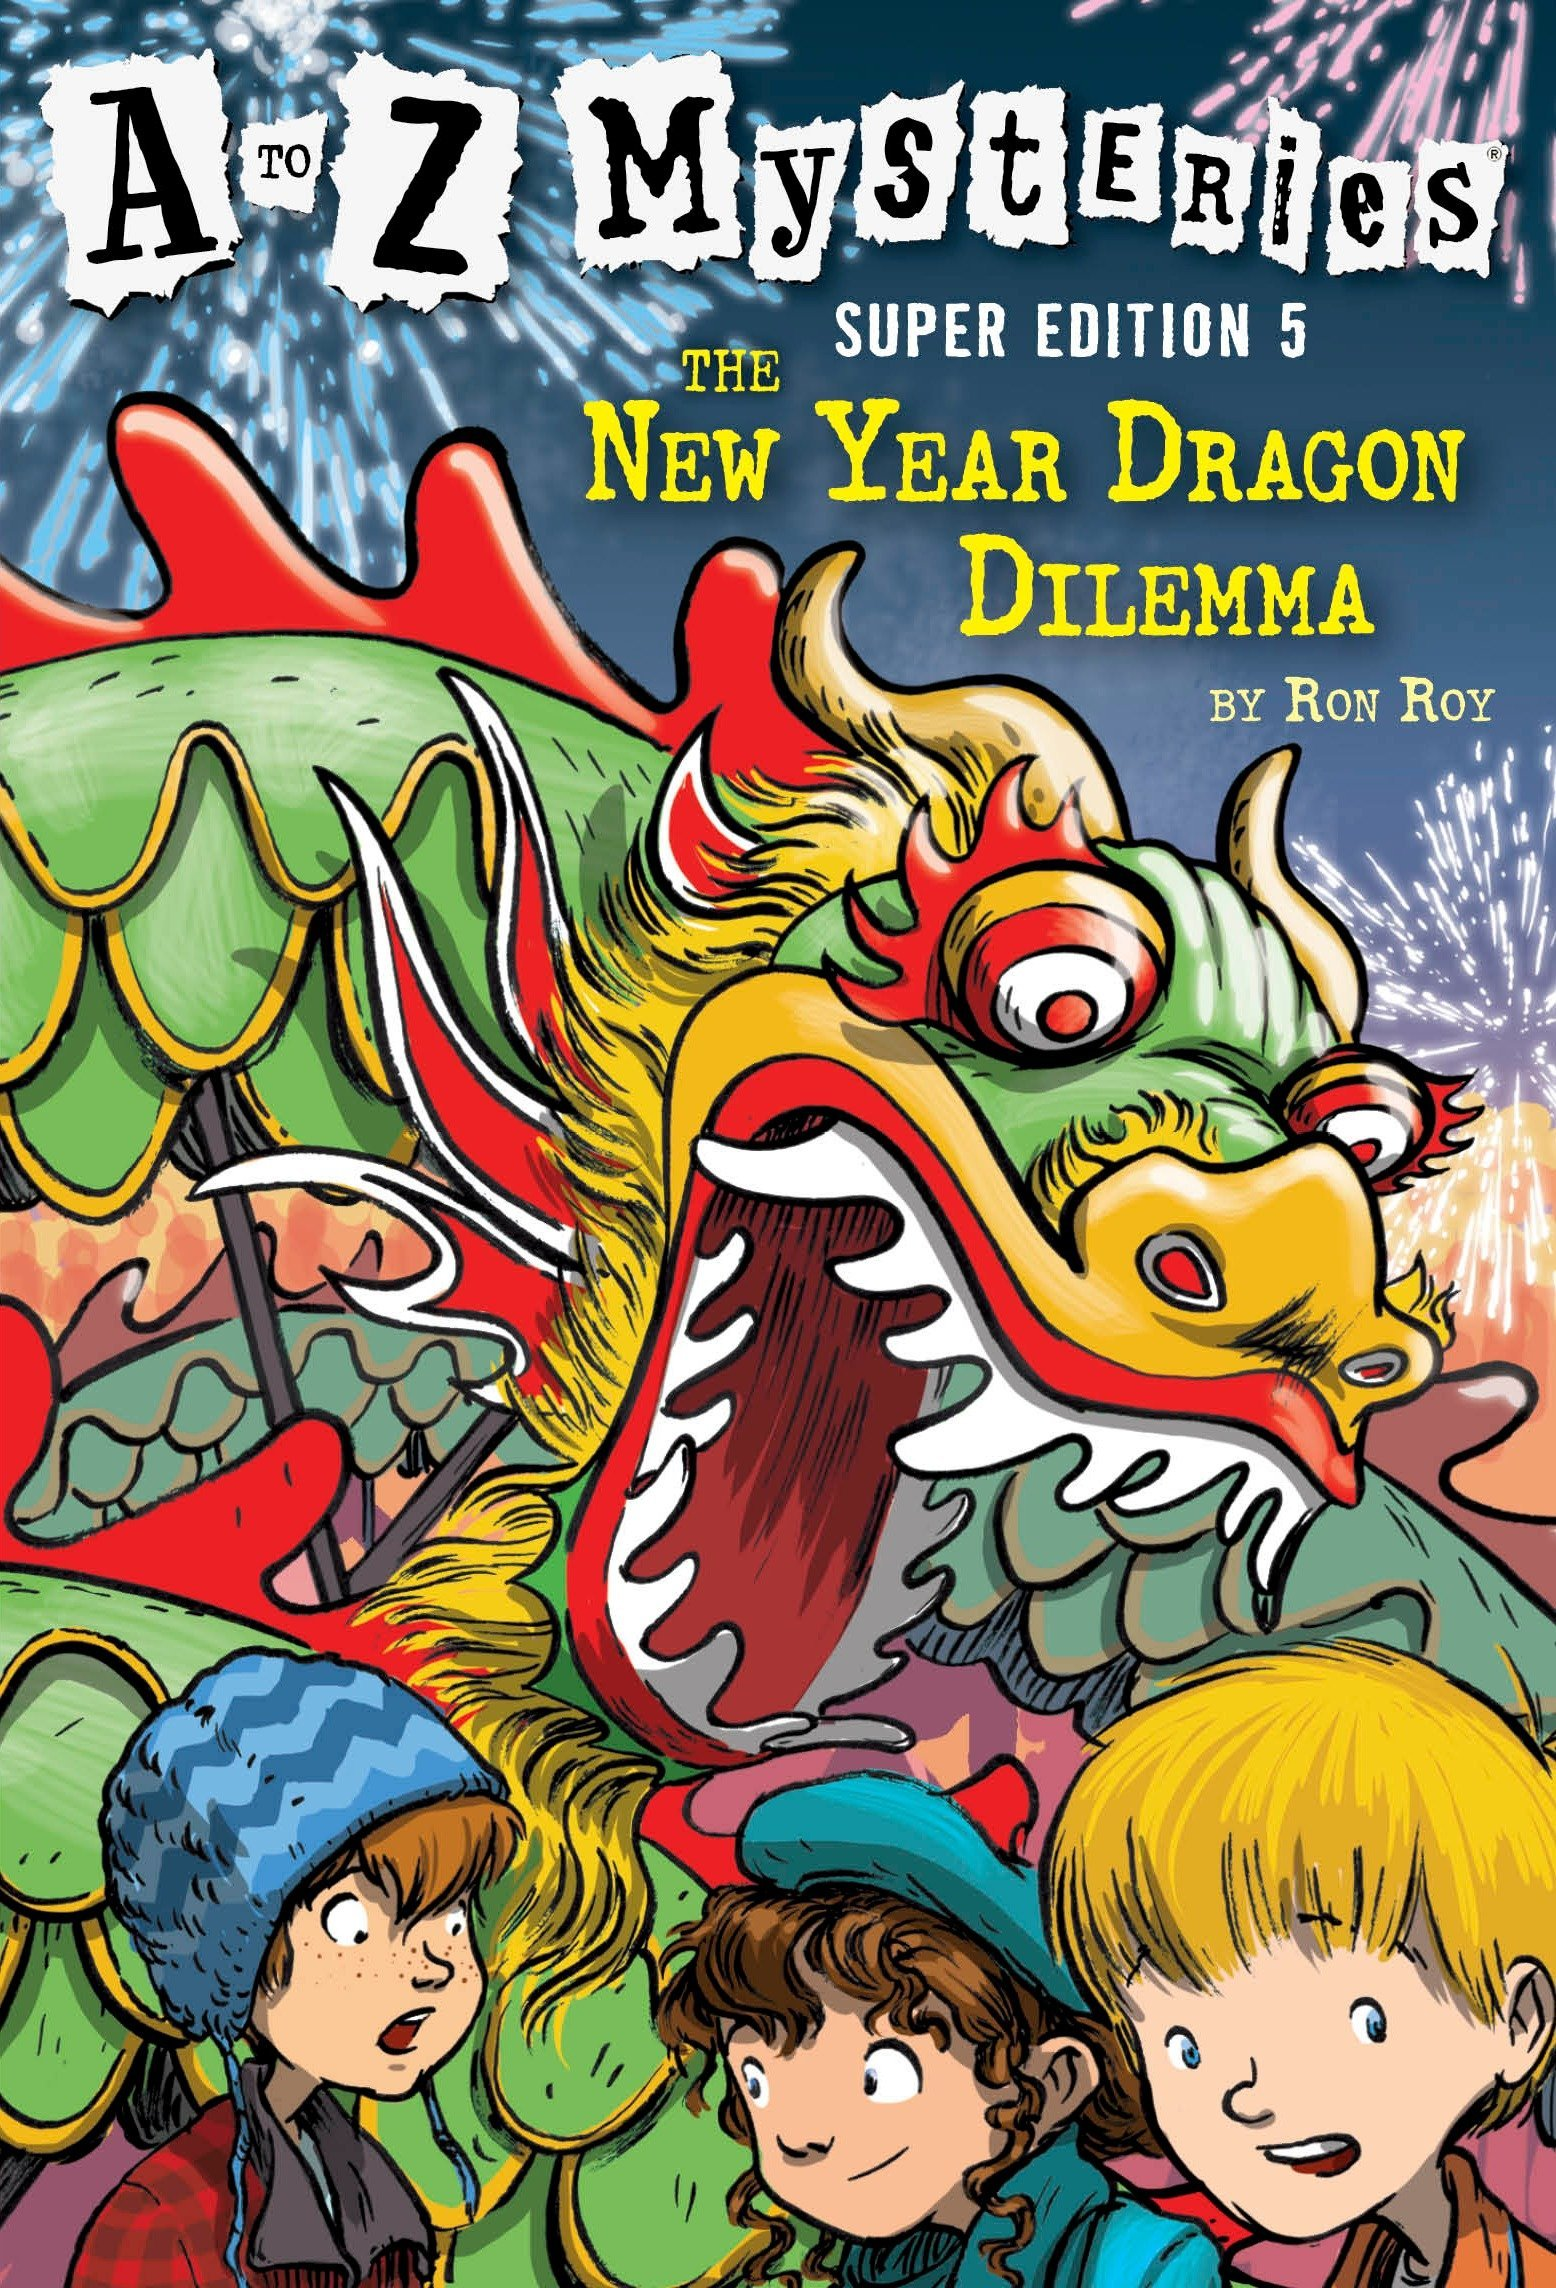 Download A to Z Mysteries Super Edition #5: The New Year Dragon Dilemma pdf